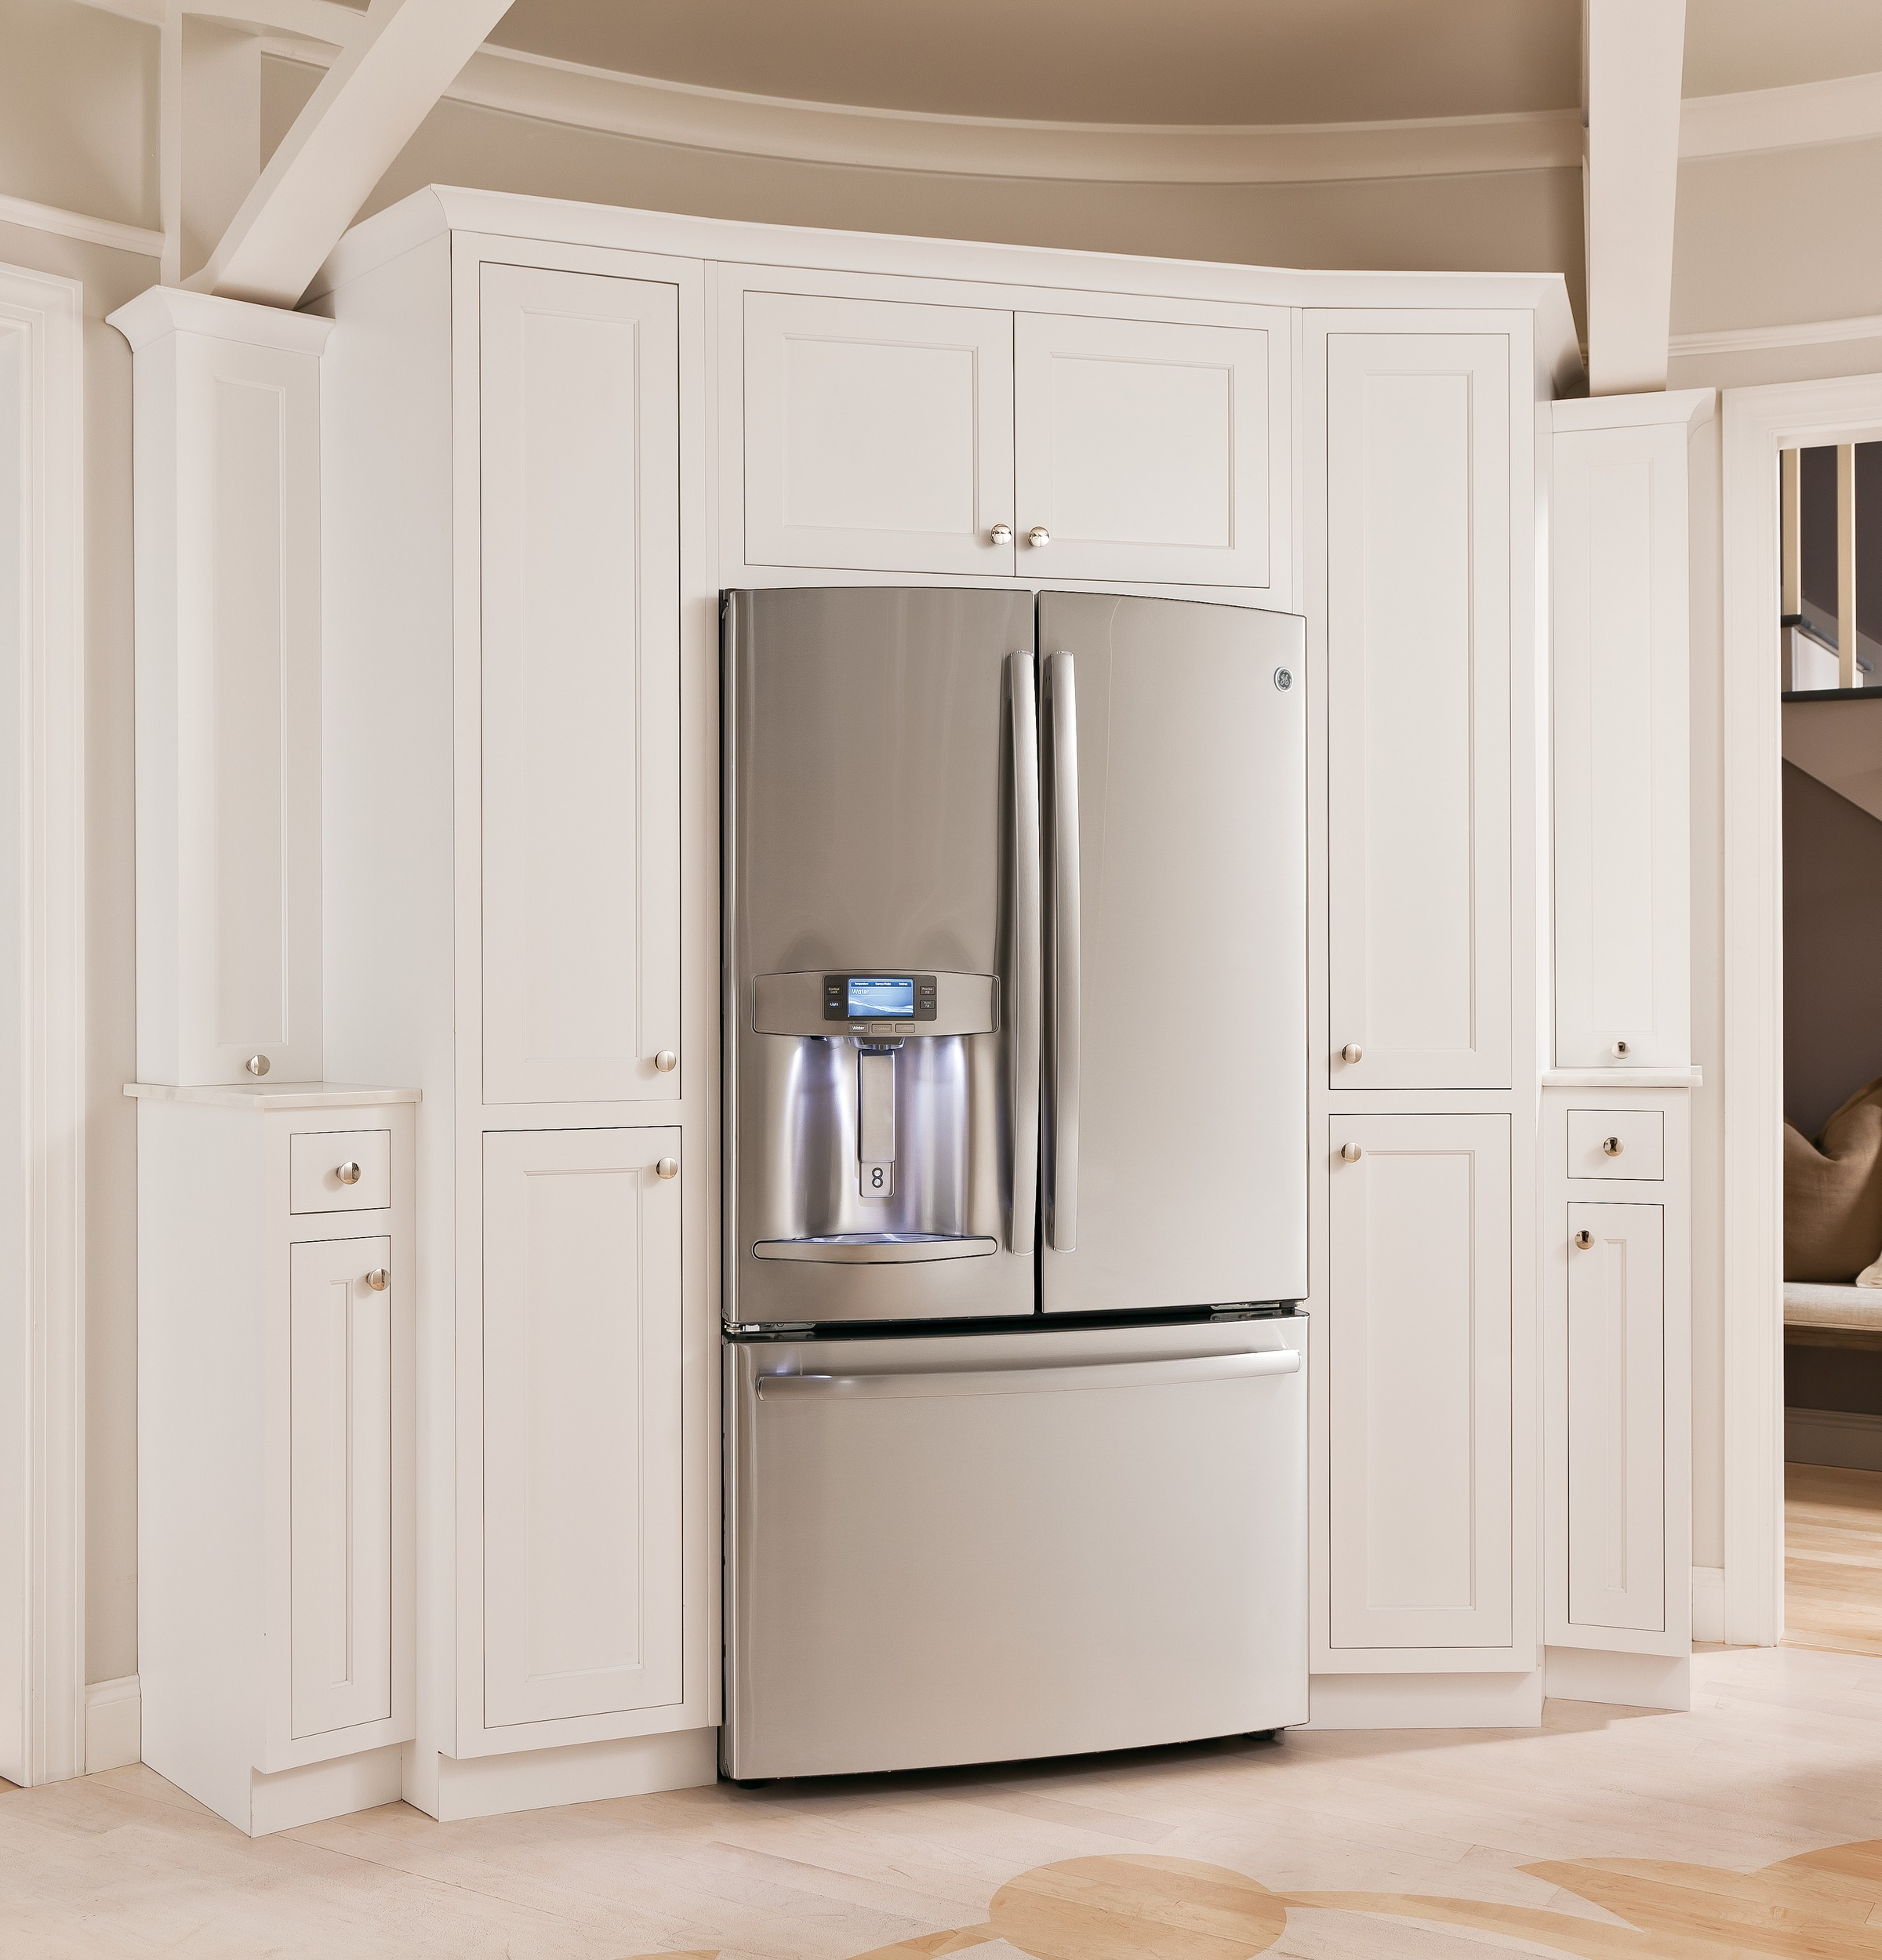 Payment For Invoice Word Ge Profile Series  Cu Ft Frenchdoor Refrigerator  Receipt Of Order Excel with Target Gift Receipt Lookup Pdf Product Image Product Image Product Image Product Image  Consumer Reports Invoice Price